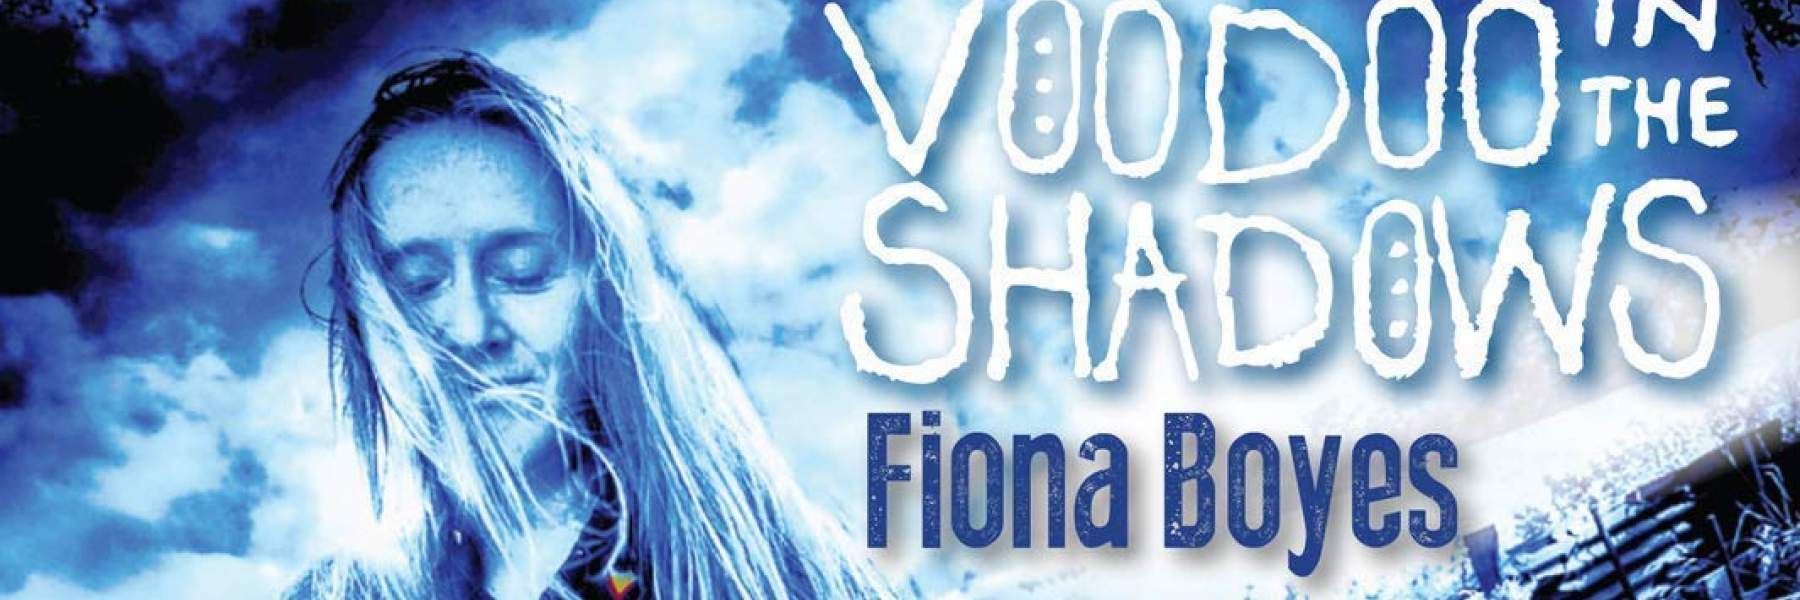 Fiona Boyes Voodoo in the Shadows